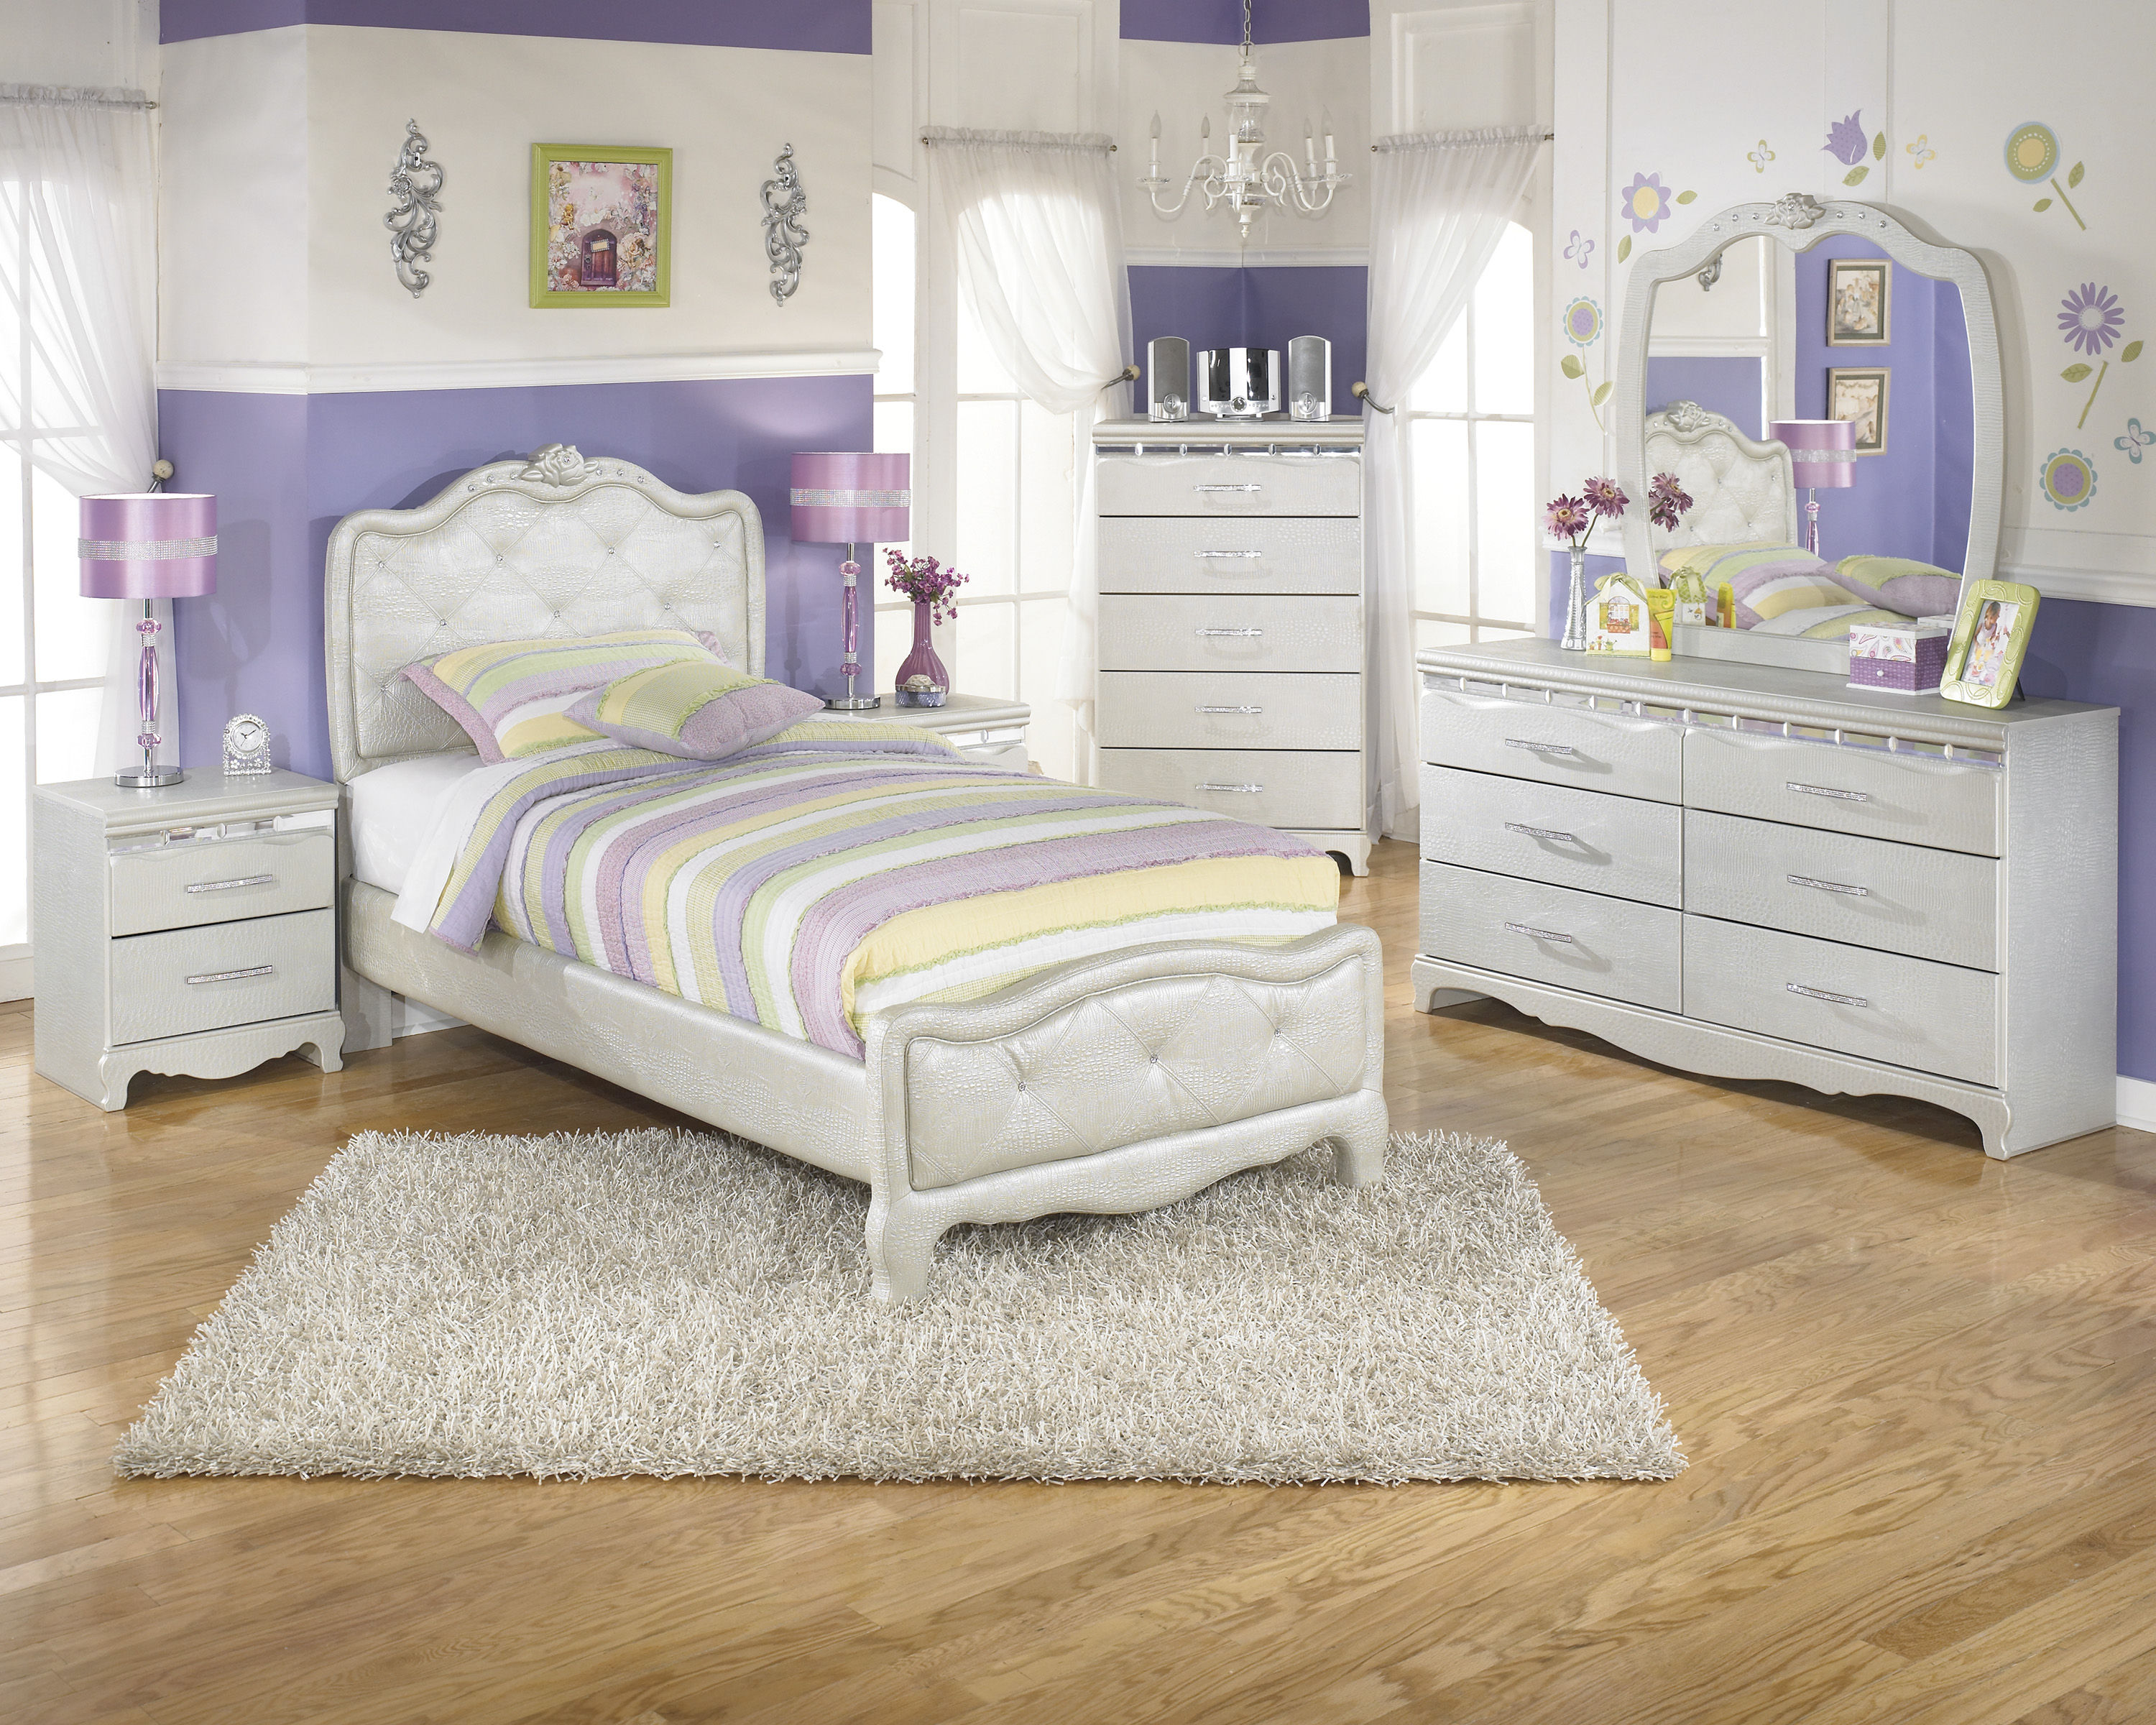 Ashley furniture zarollina 2pc kids bedroom set with twin bed the classy home Ashley furniture childrens bedroom sets